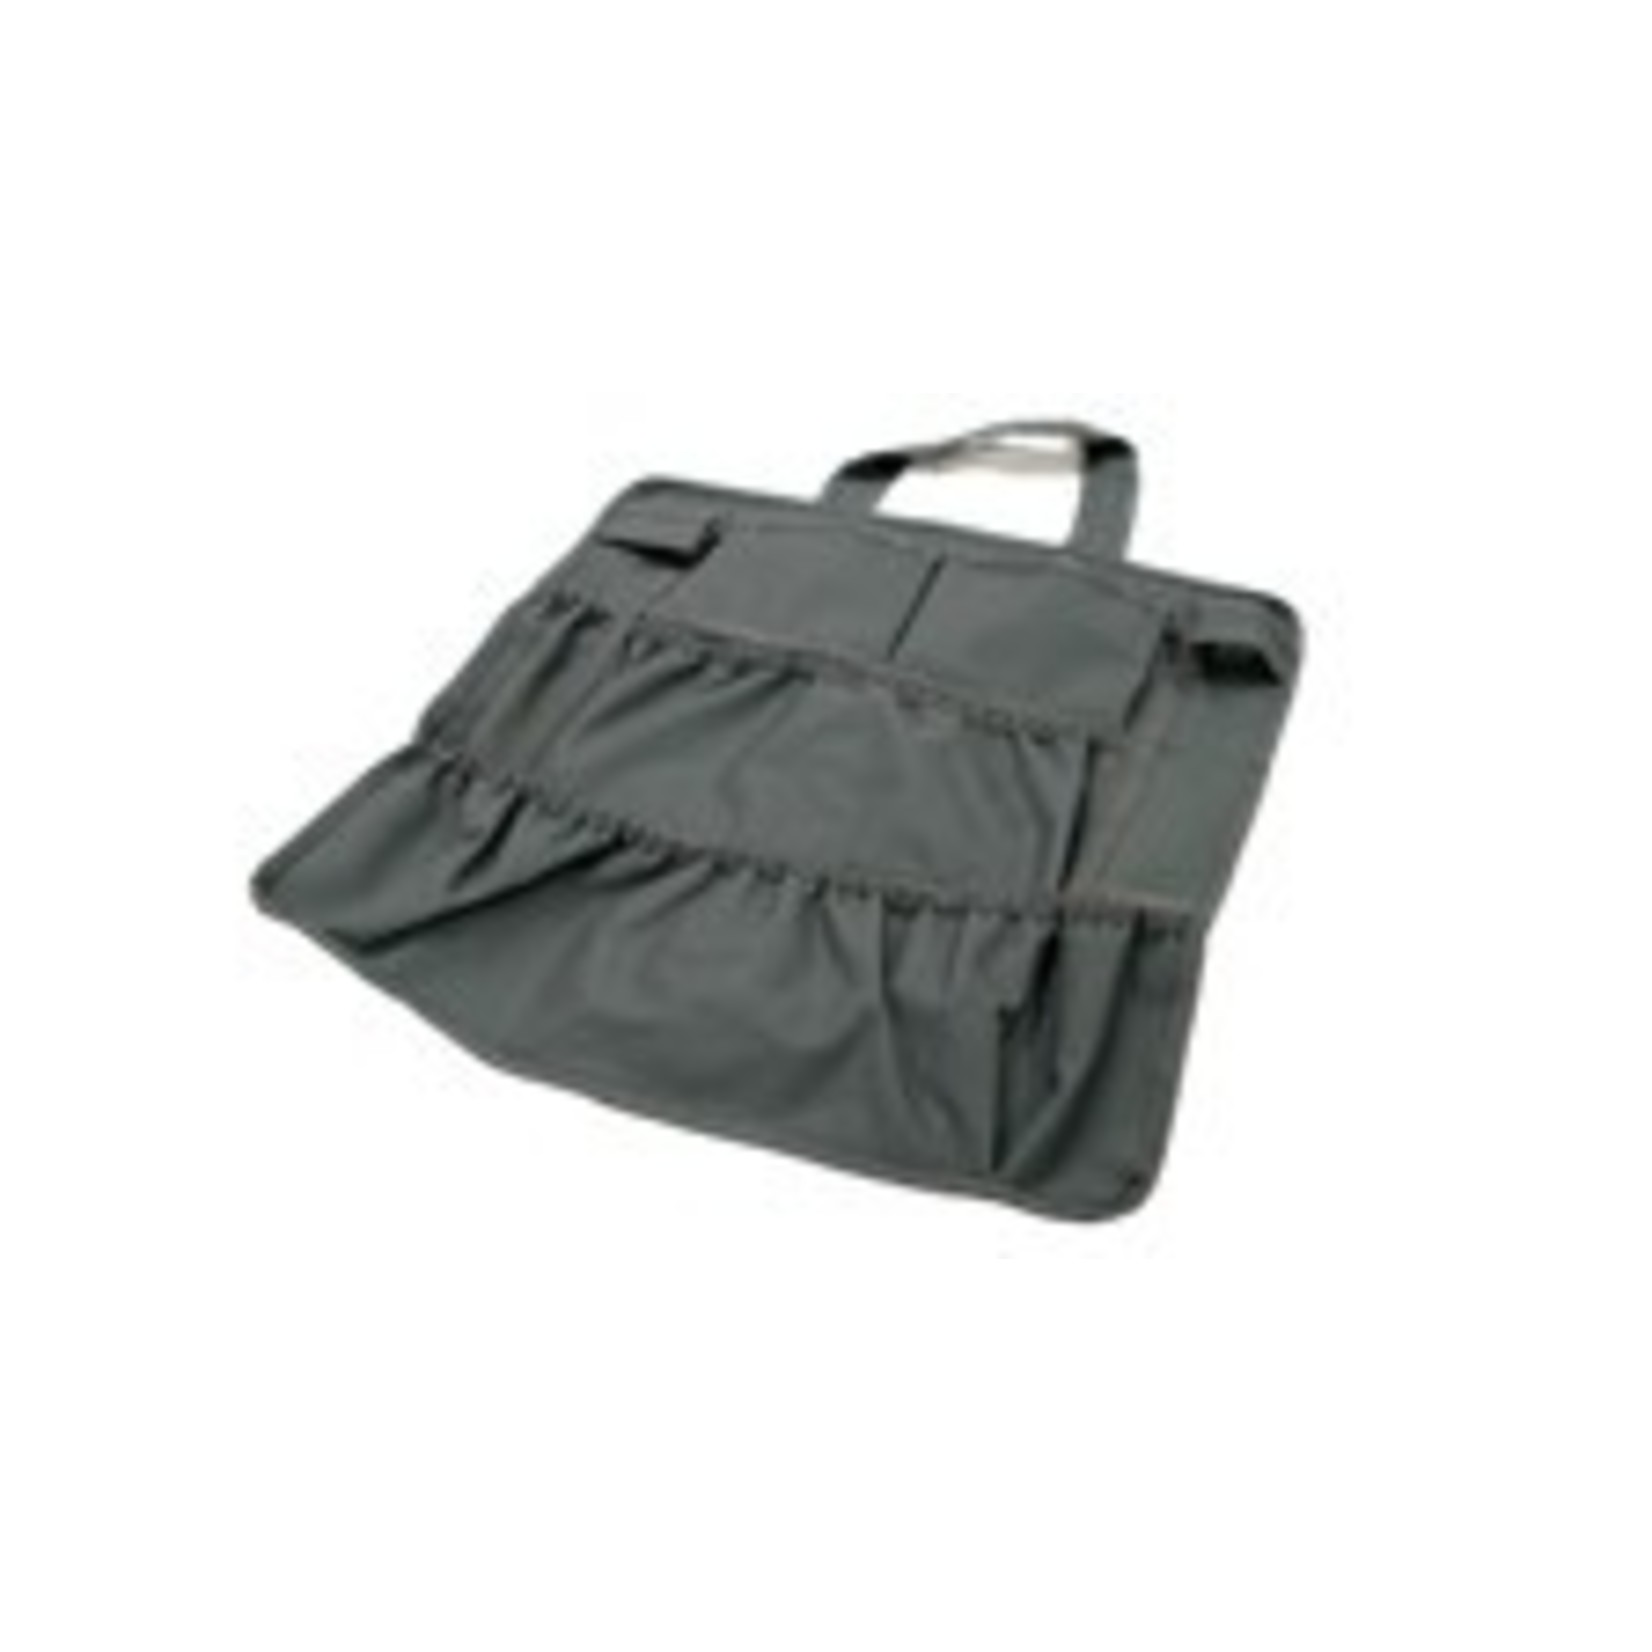 BEAM Beam CVS Tool & Caddy Bag